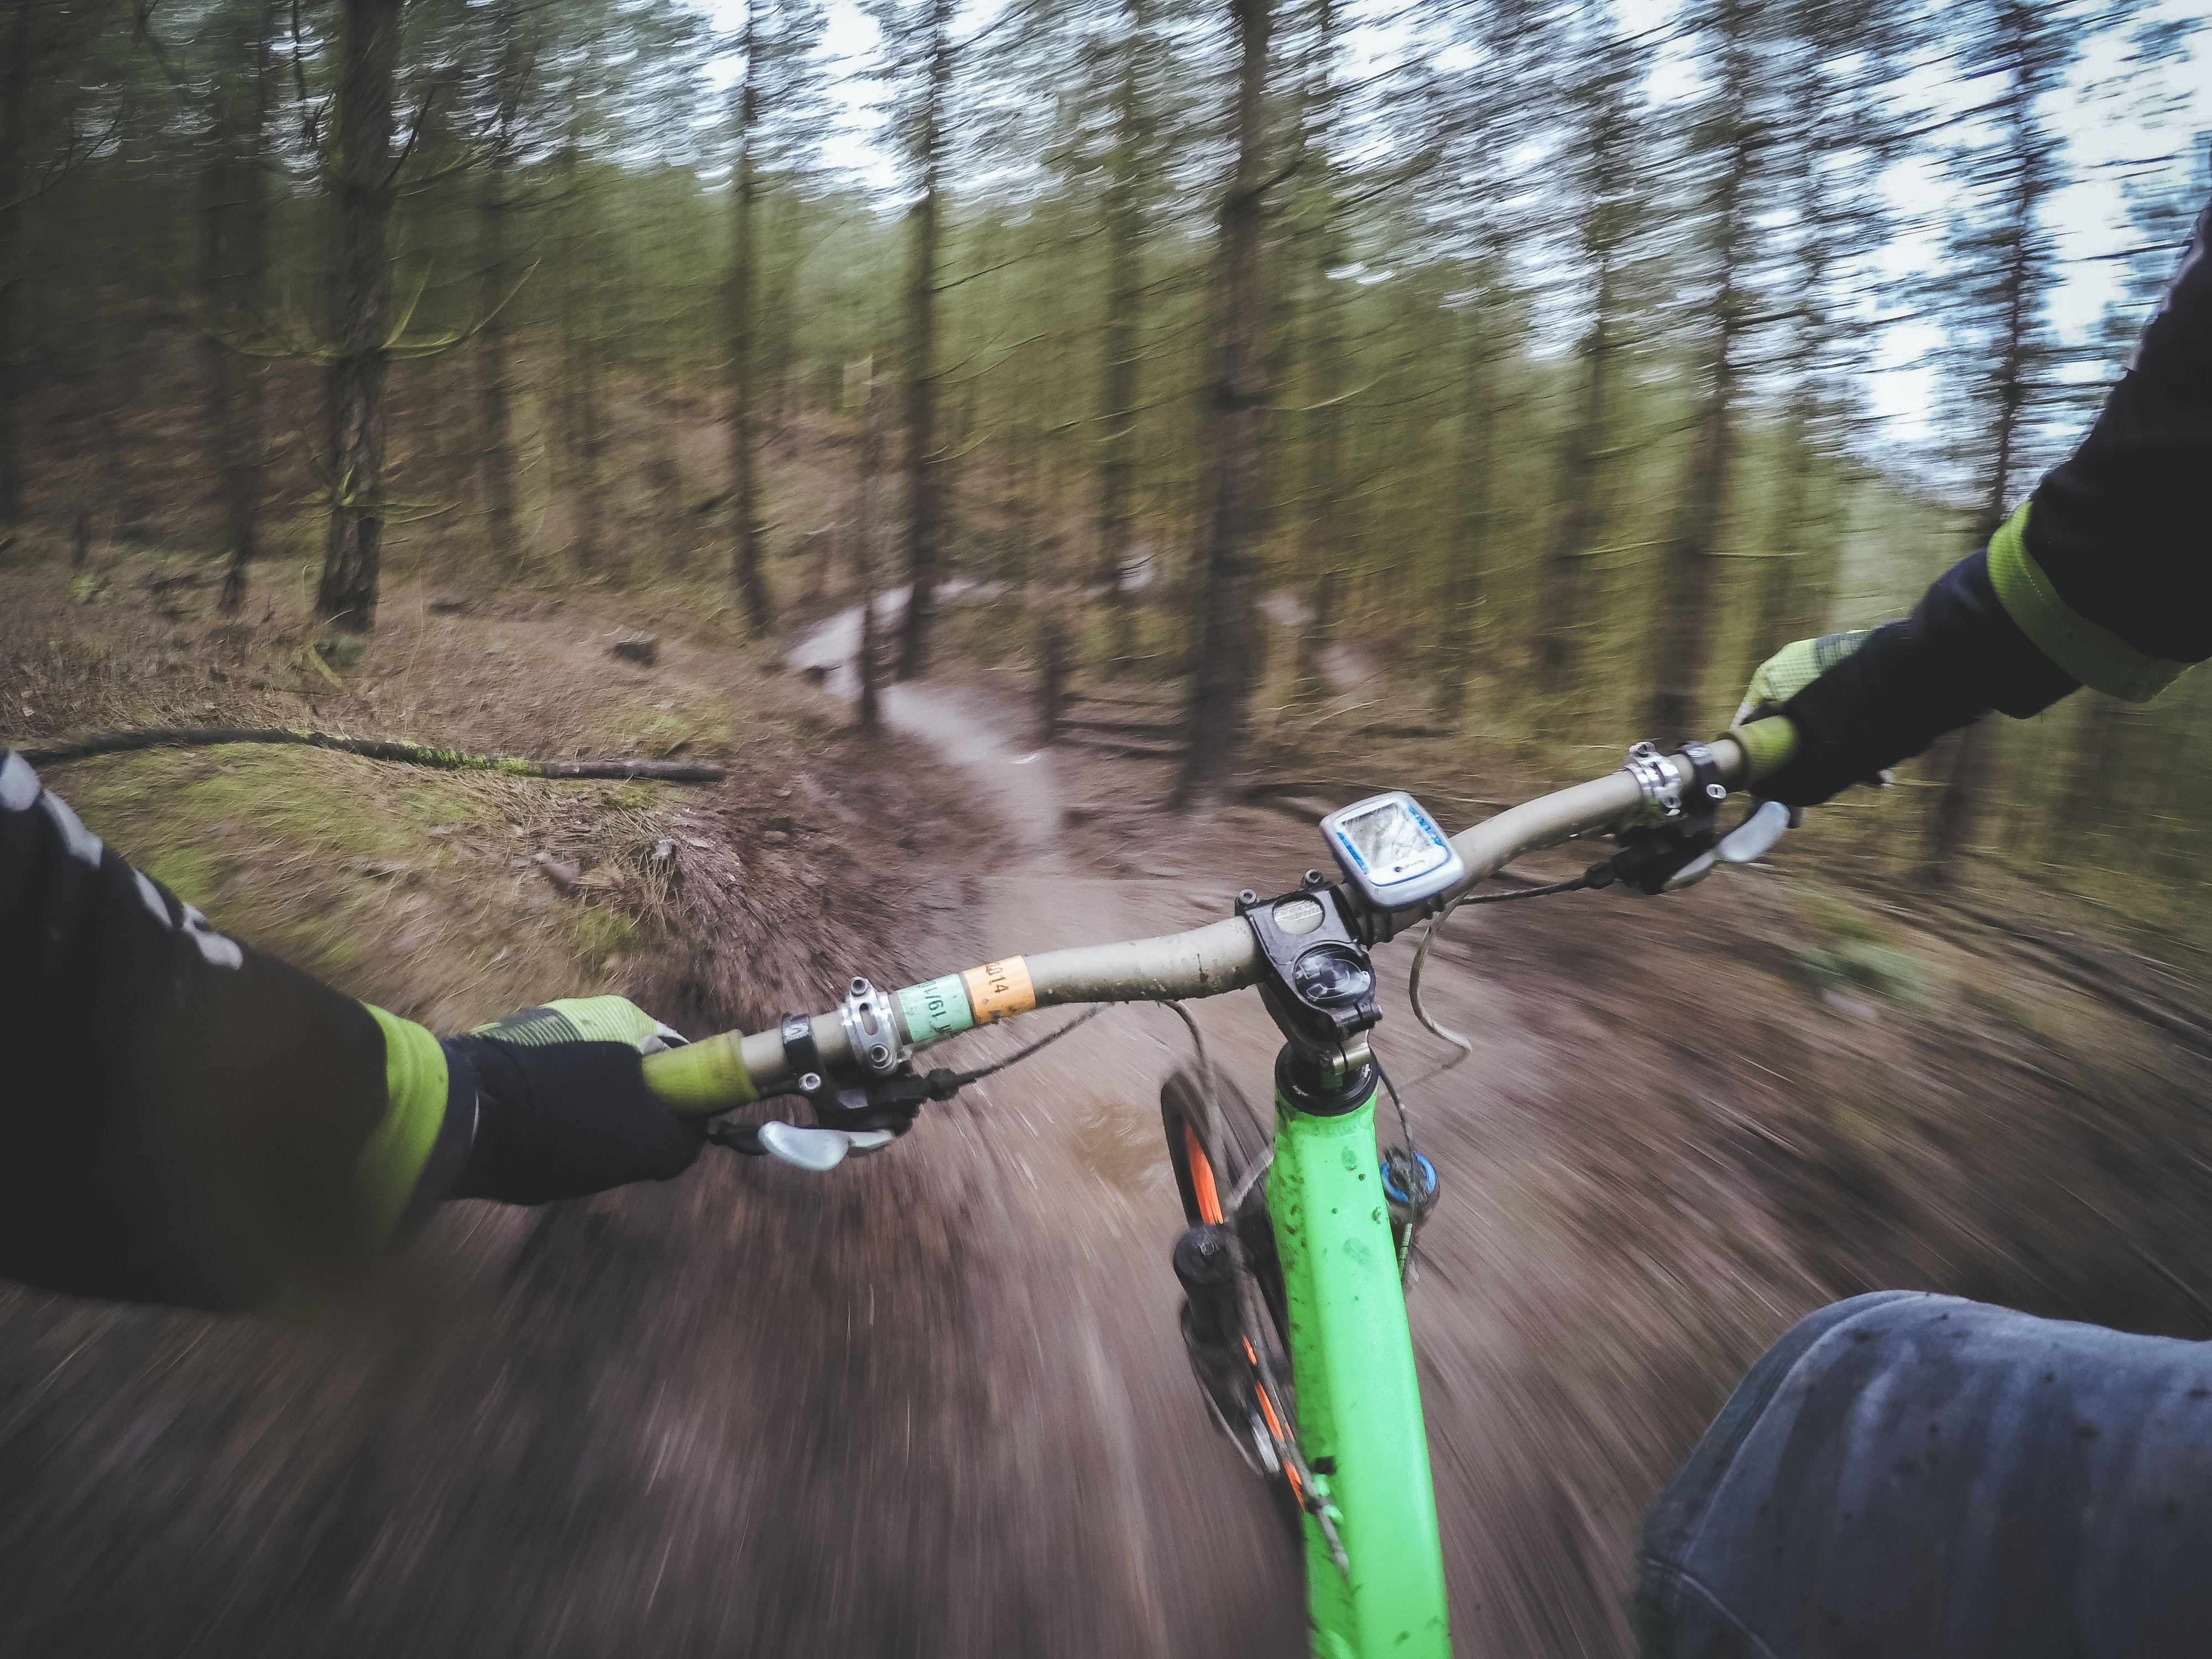 POV shot of the cyclist's hands on the handlebars on a forest trail in Cannock.